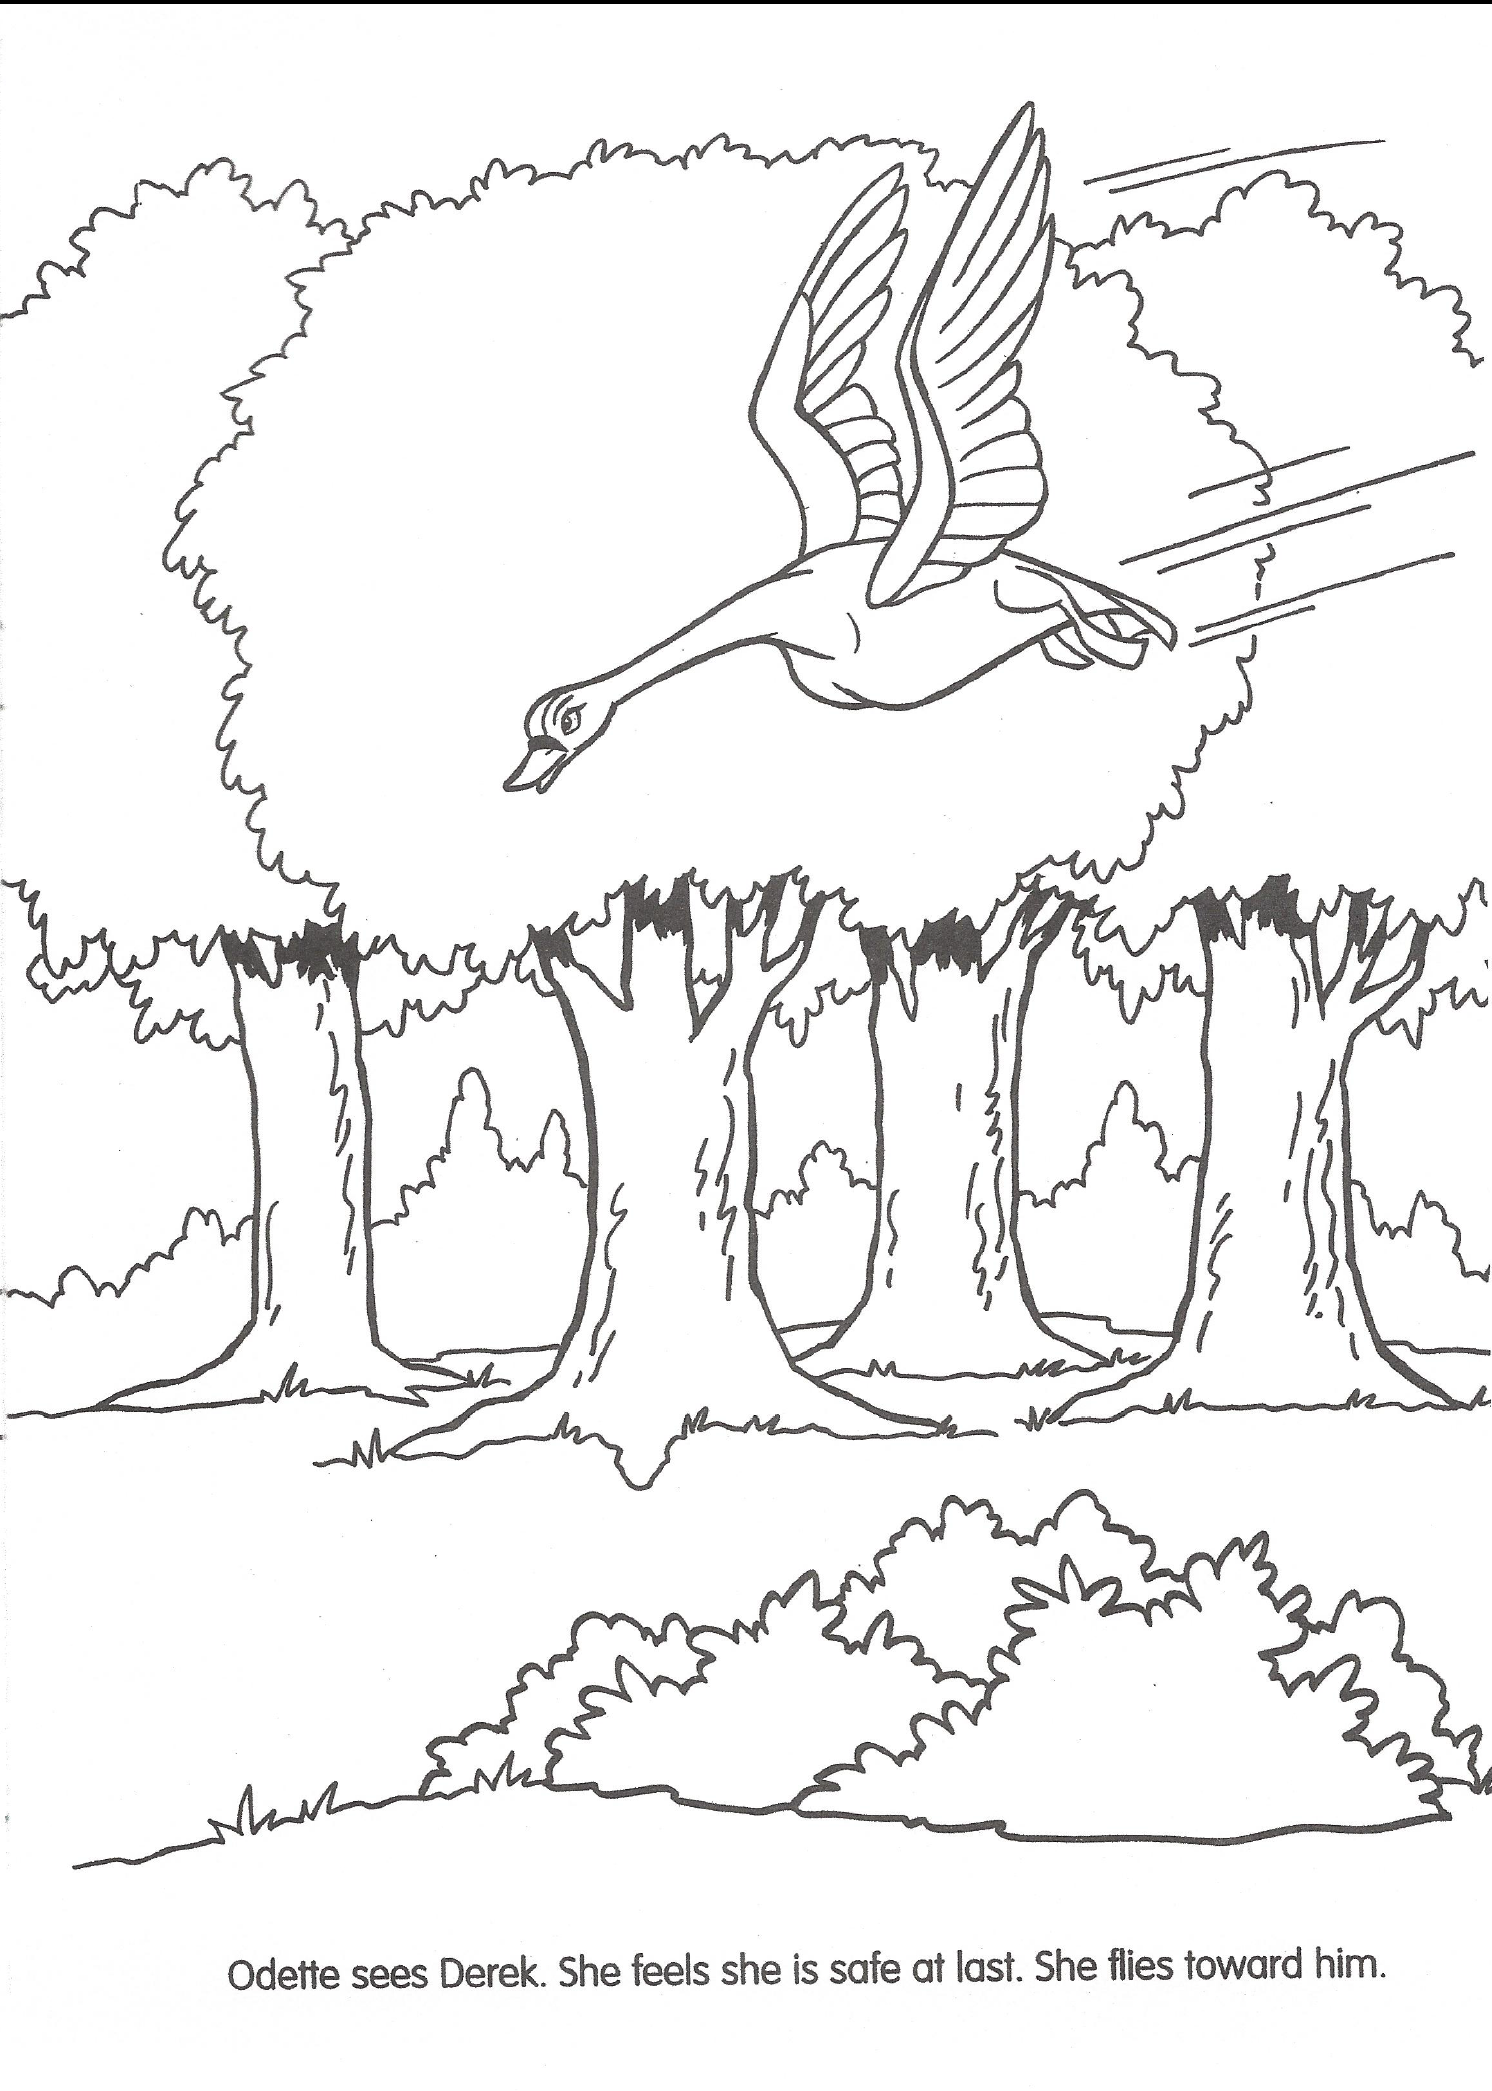 odette and derek coloring pages - photo#31